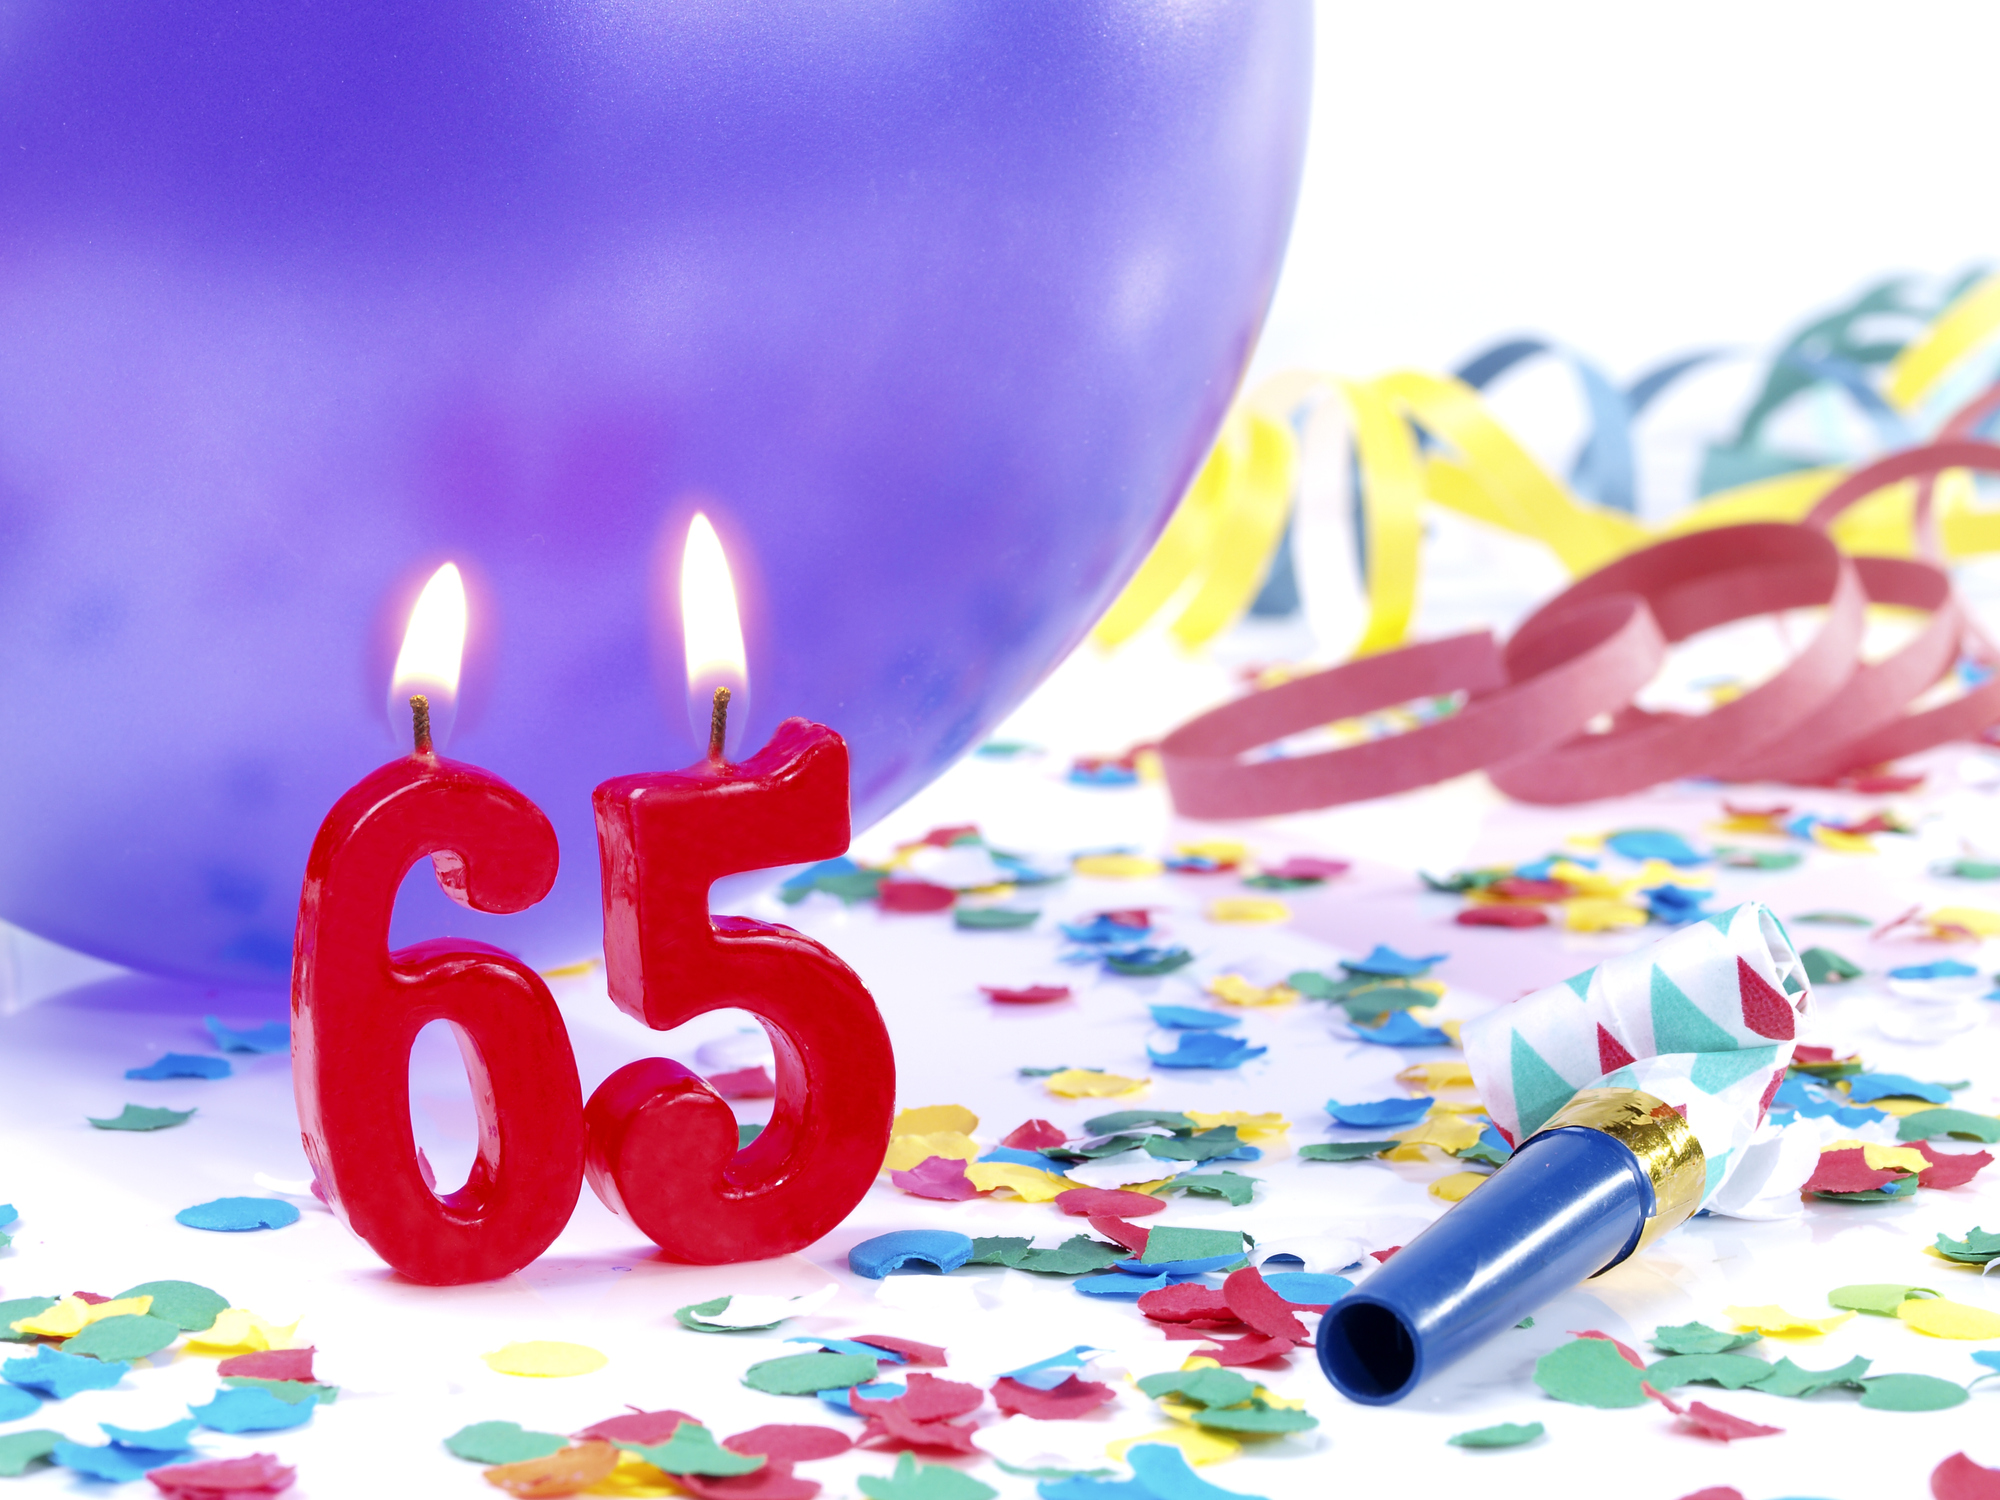 Two birthday candles that are lit surrounded by confetti and a purple balloon. The candles are in the shape of a 6 and a 5.